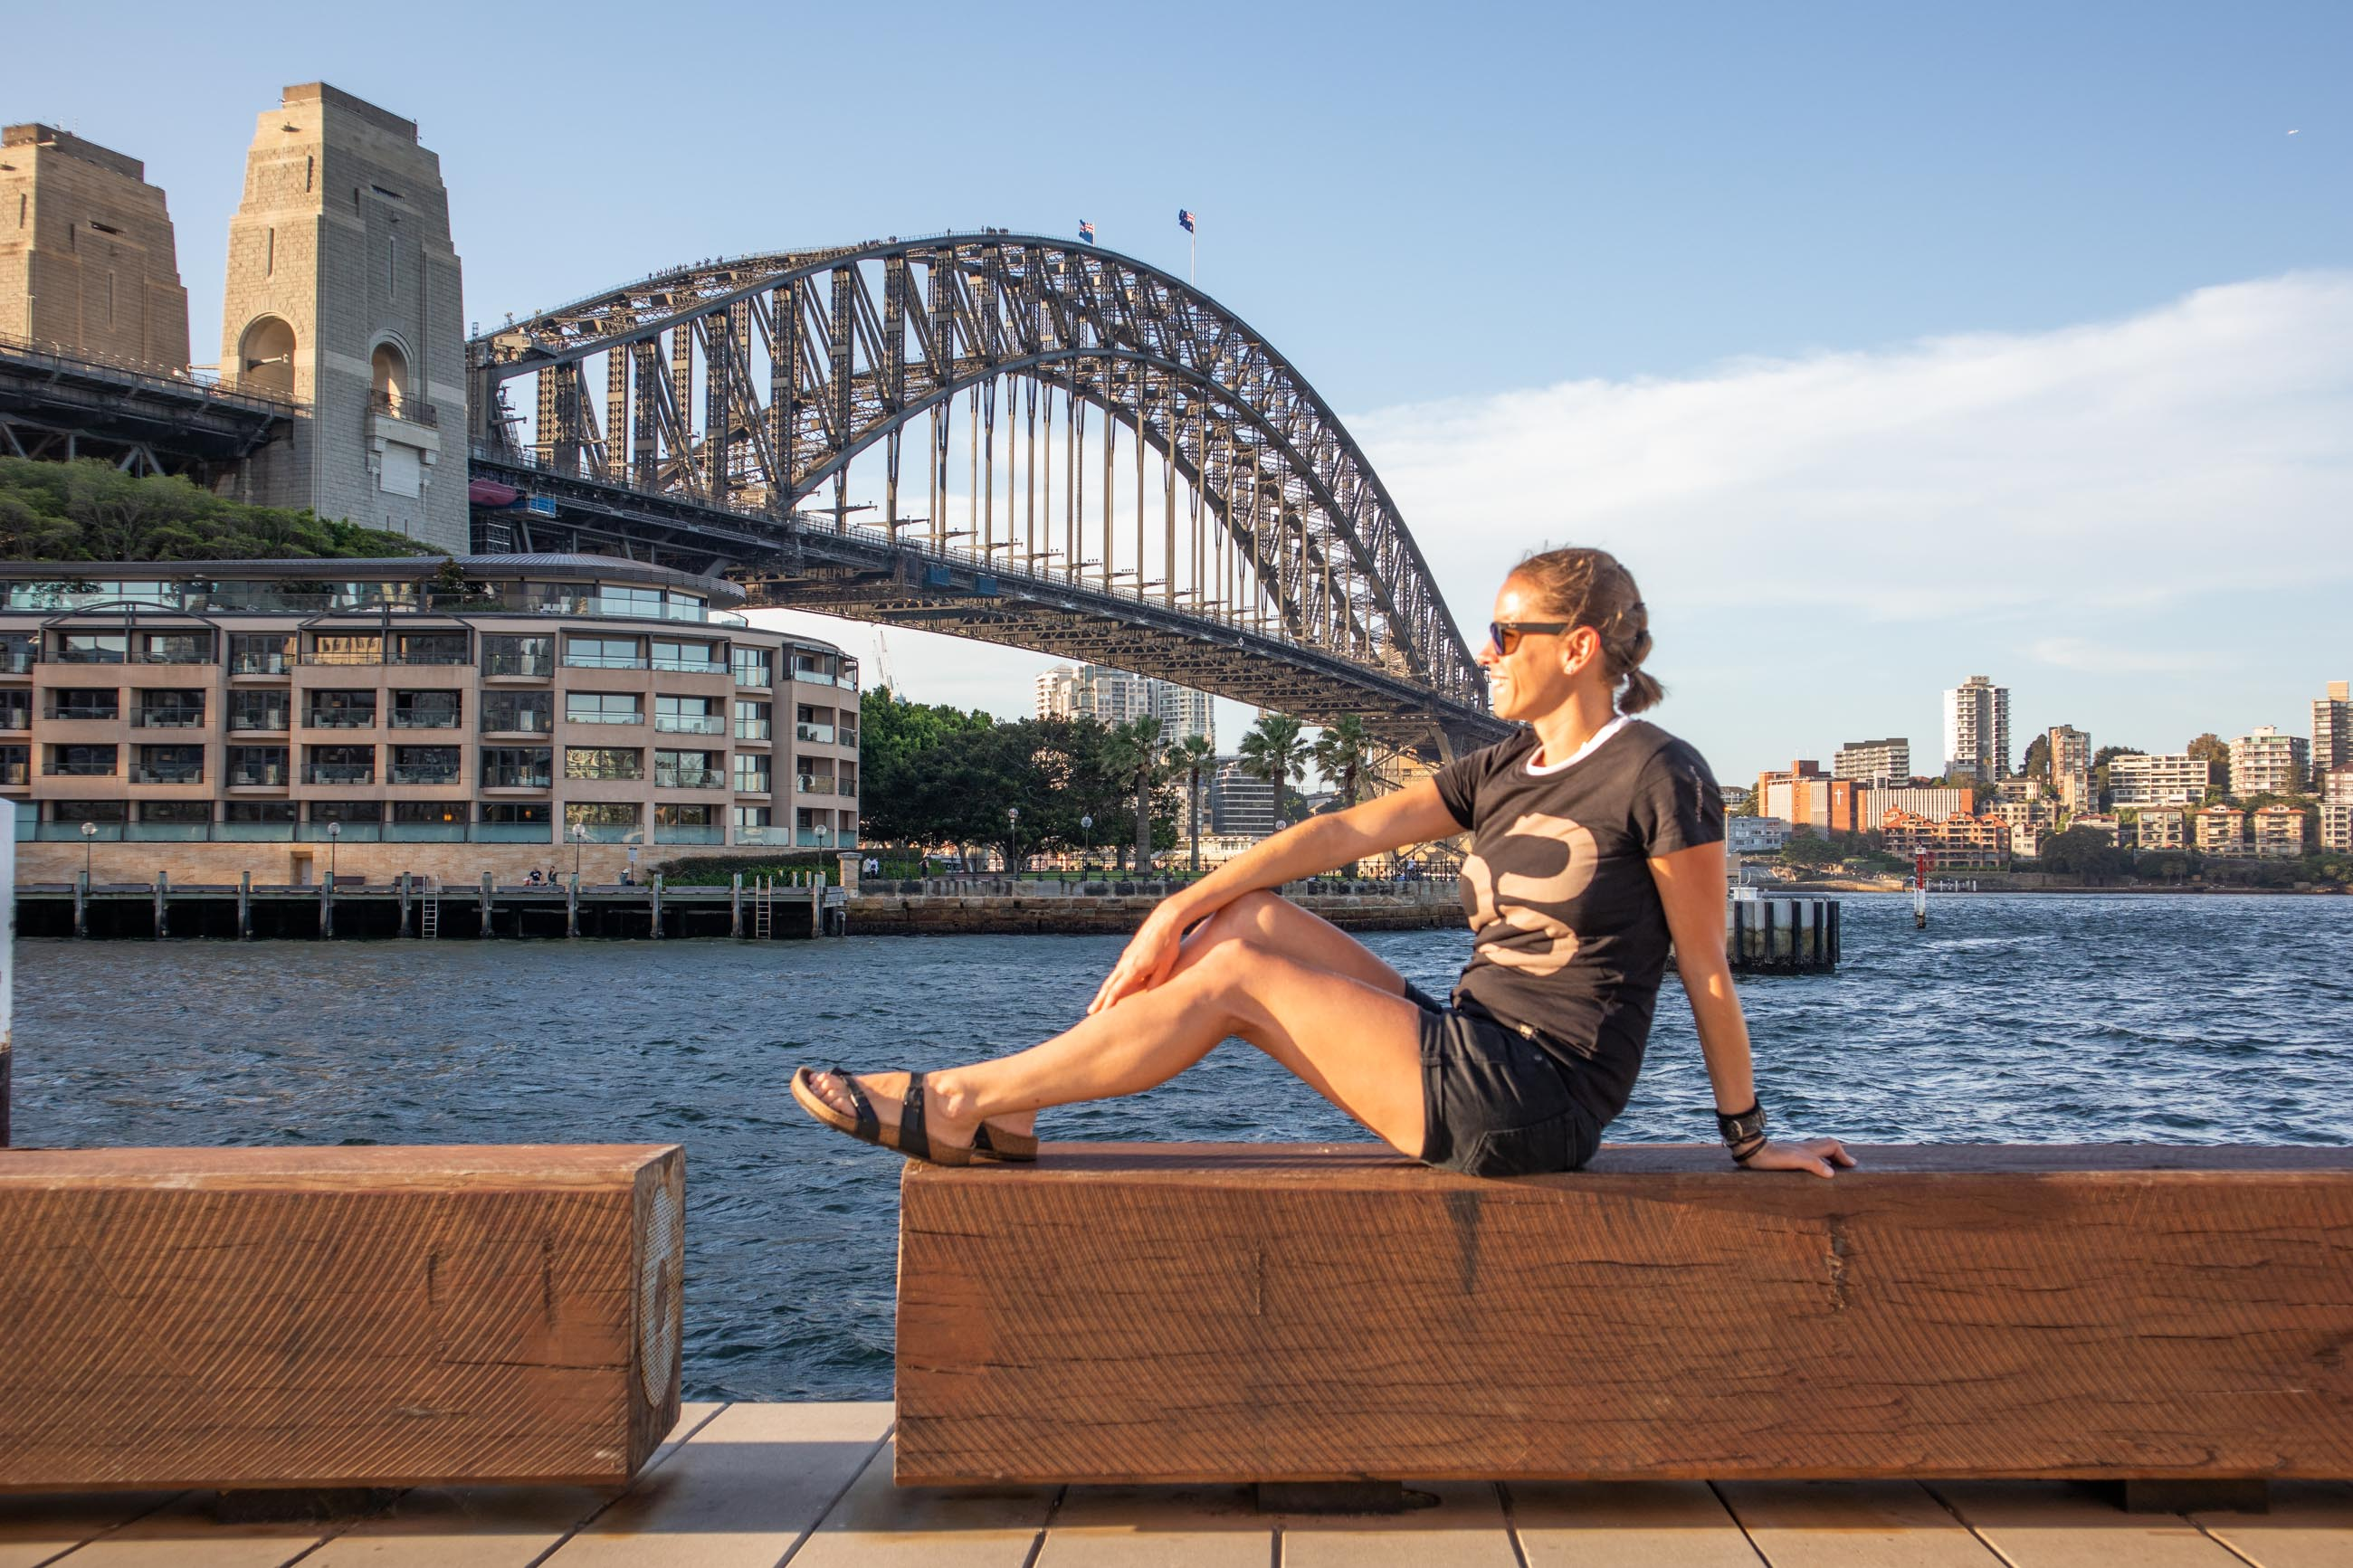 https://bubo.sk/uploads/galleries/5028/veron_hulikova_australia_sydney_harbour_bridgebubo2.jpg